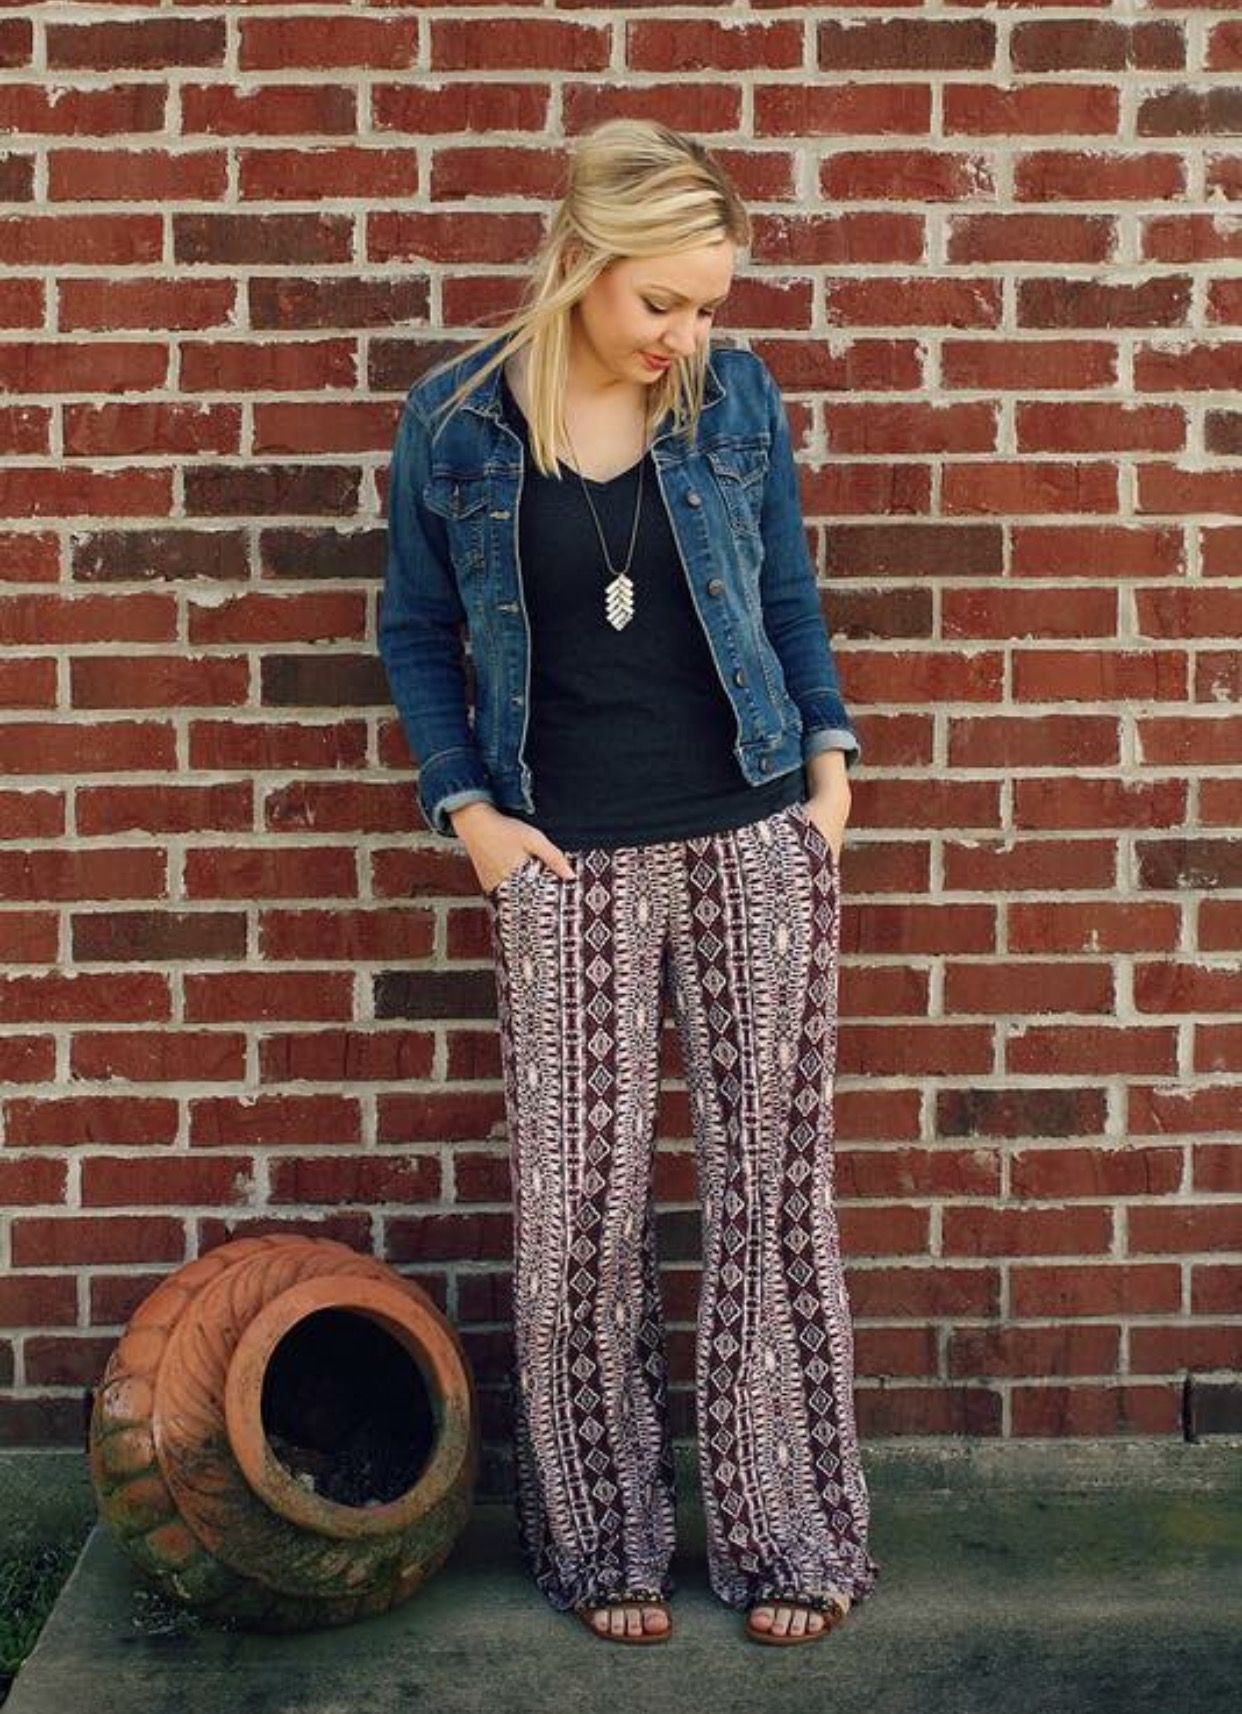 Love these pants!! Looks super comfy!